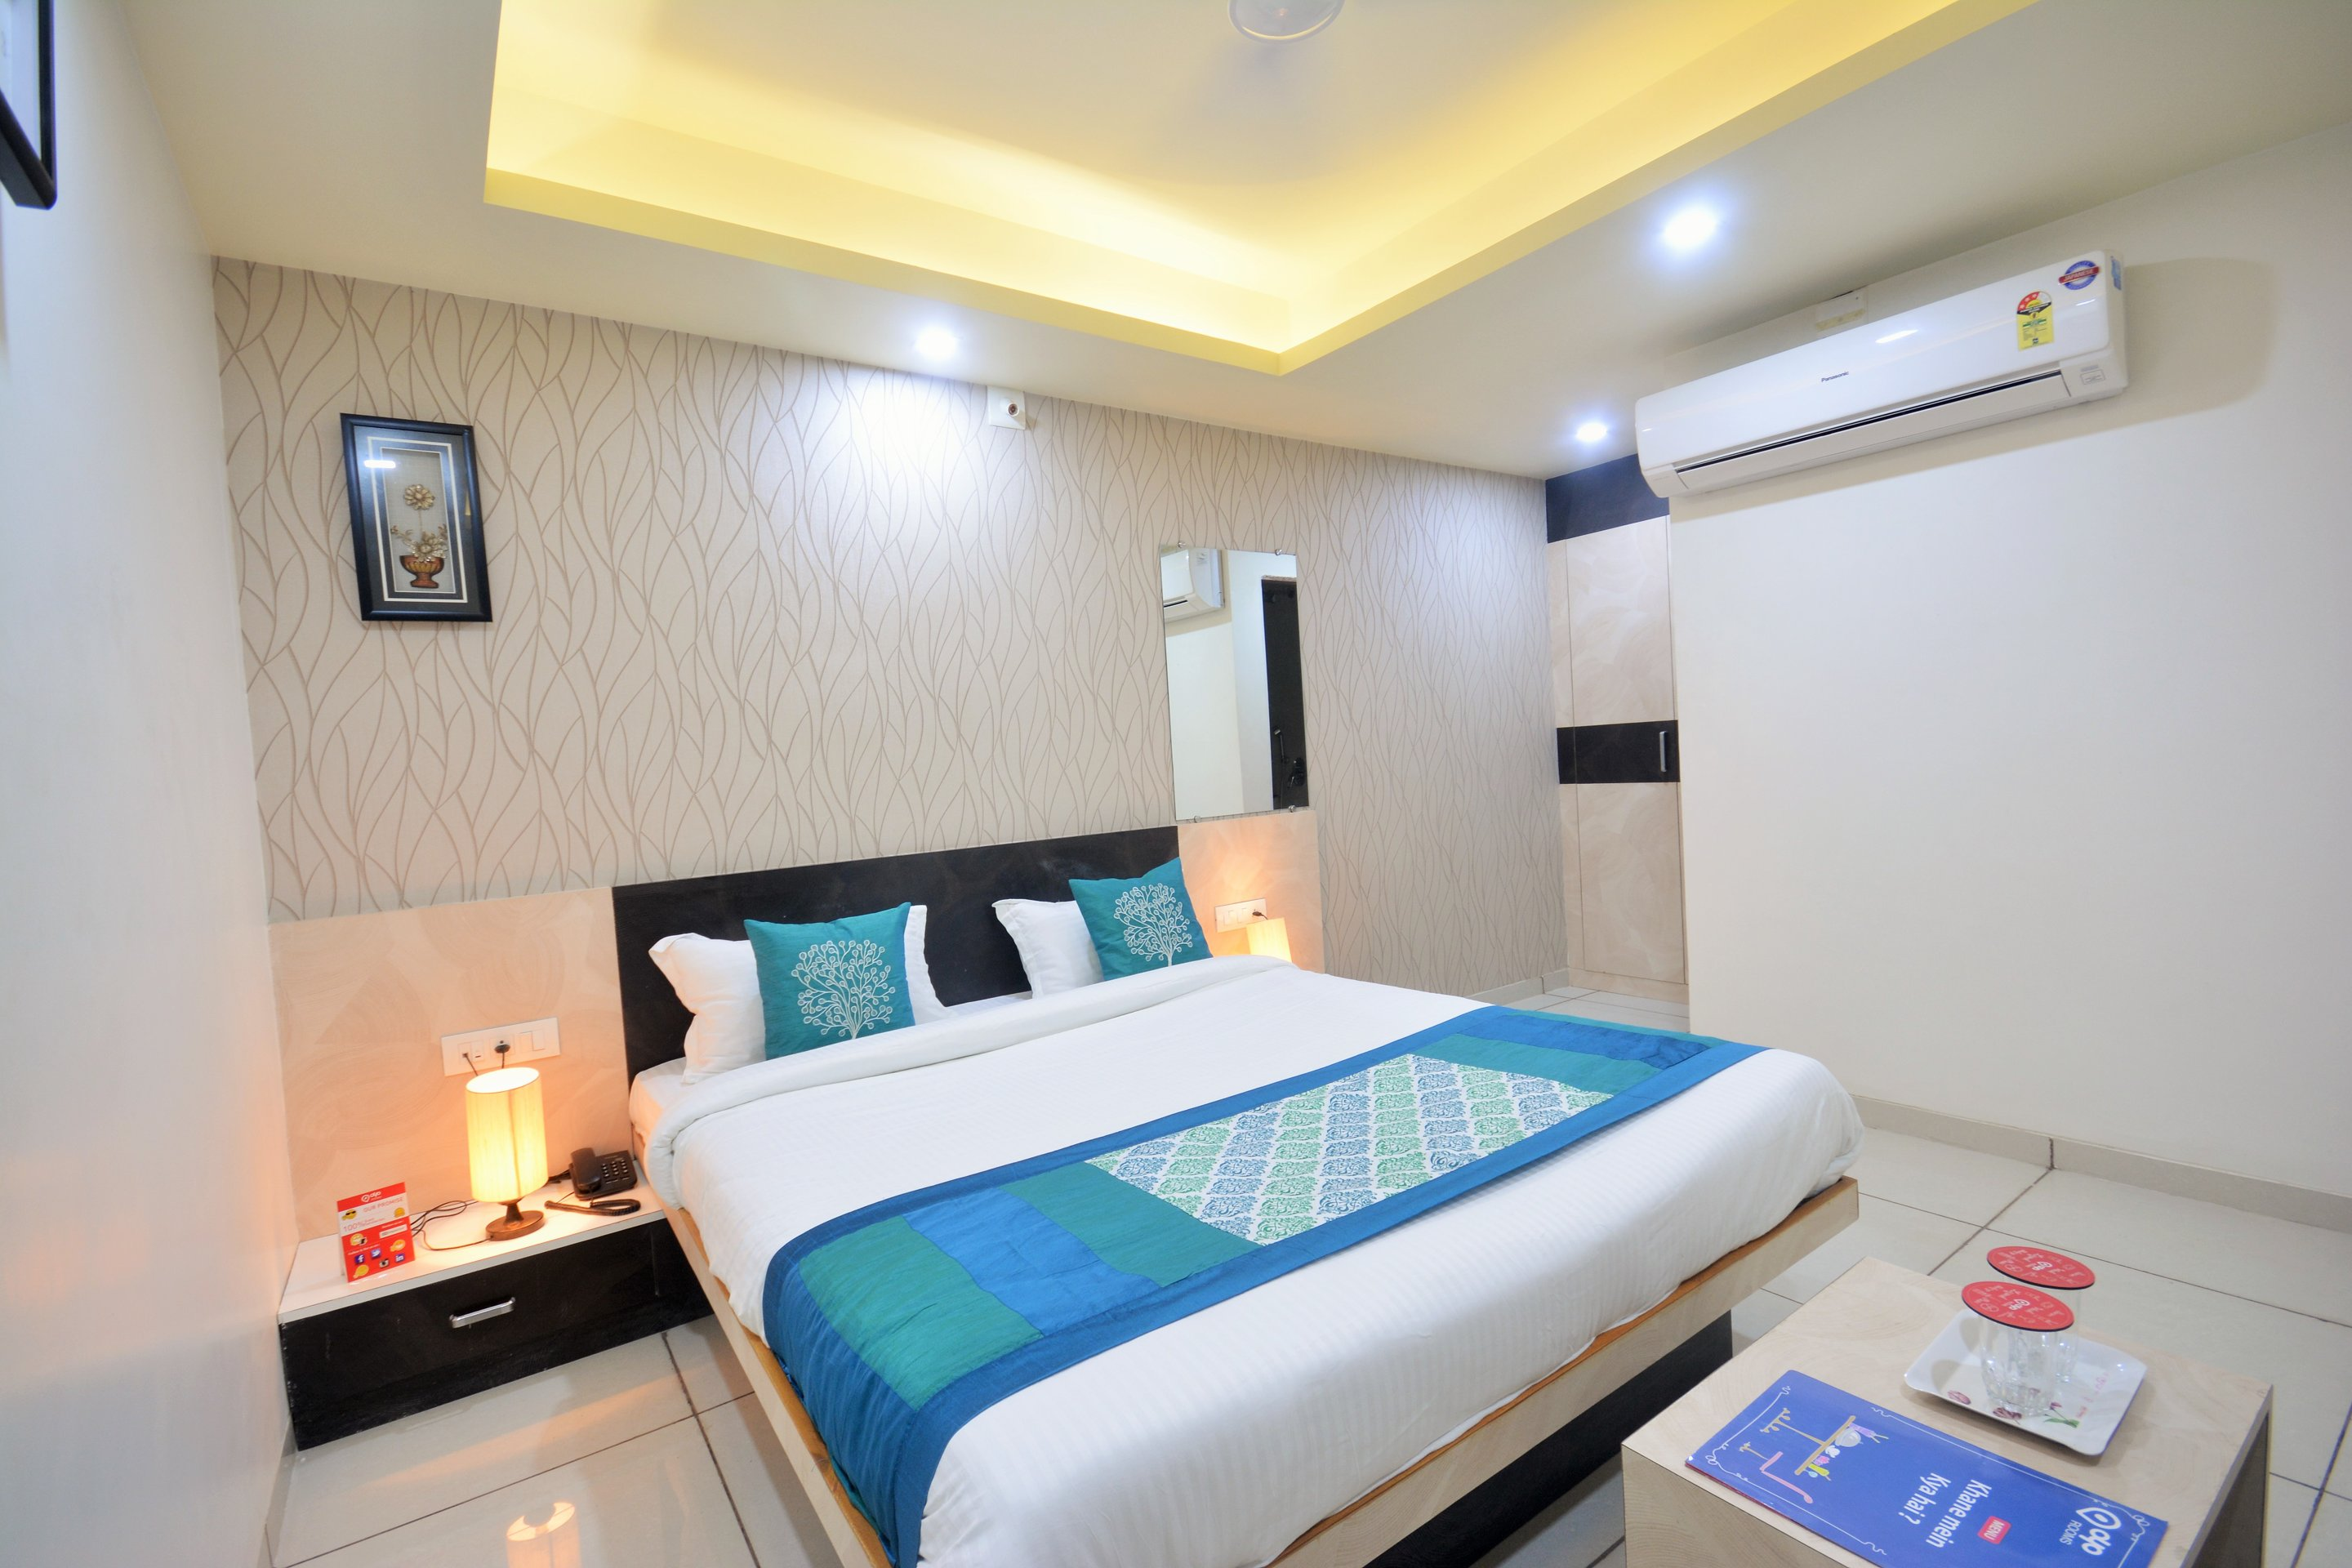 OYO Rooms Motera Near Gandhinagar